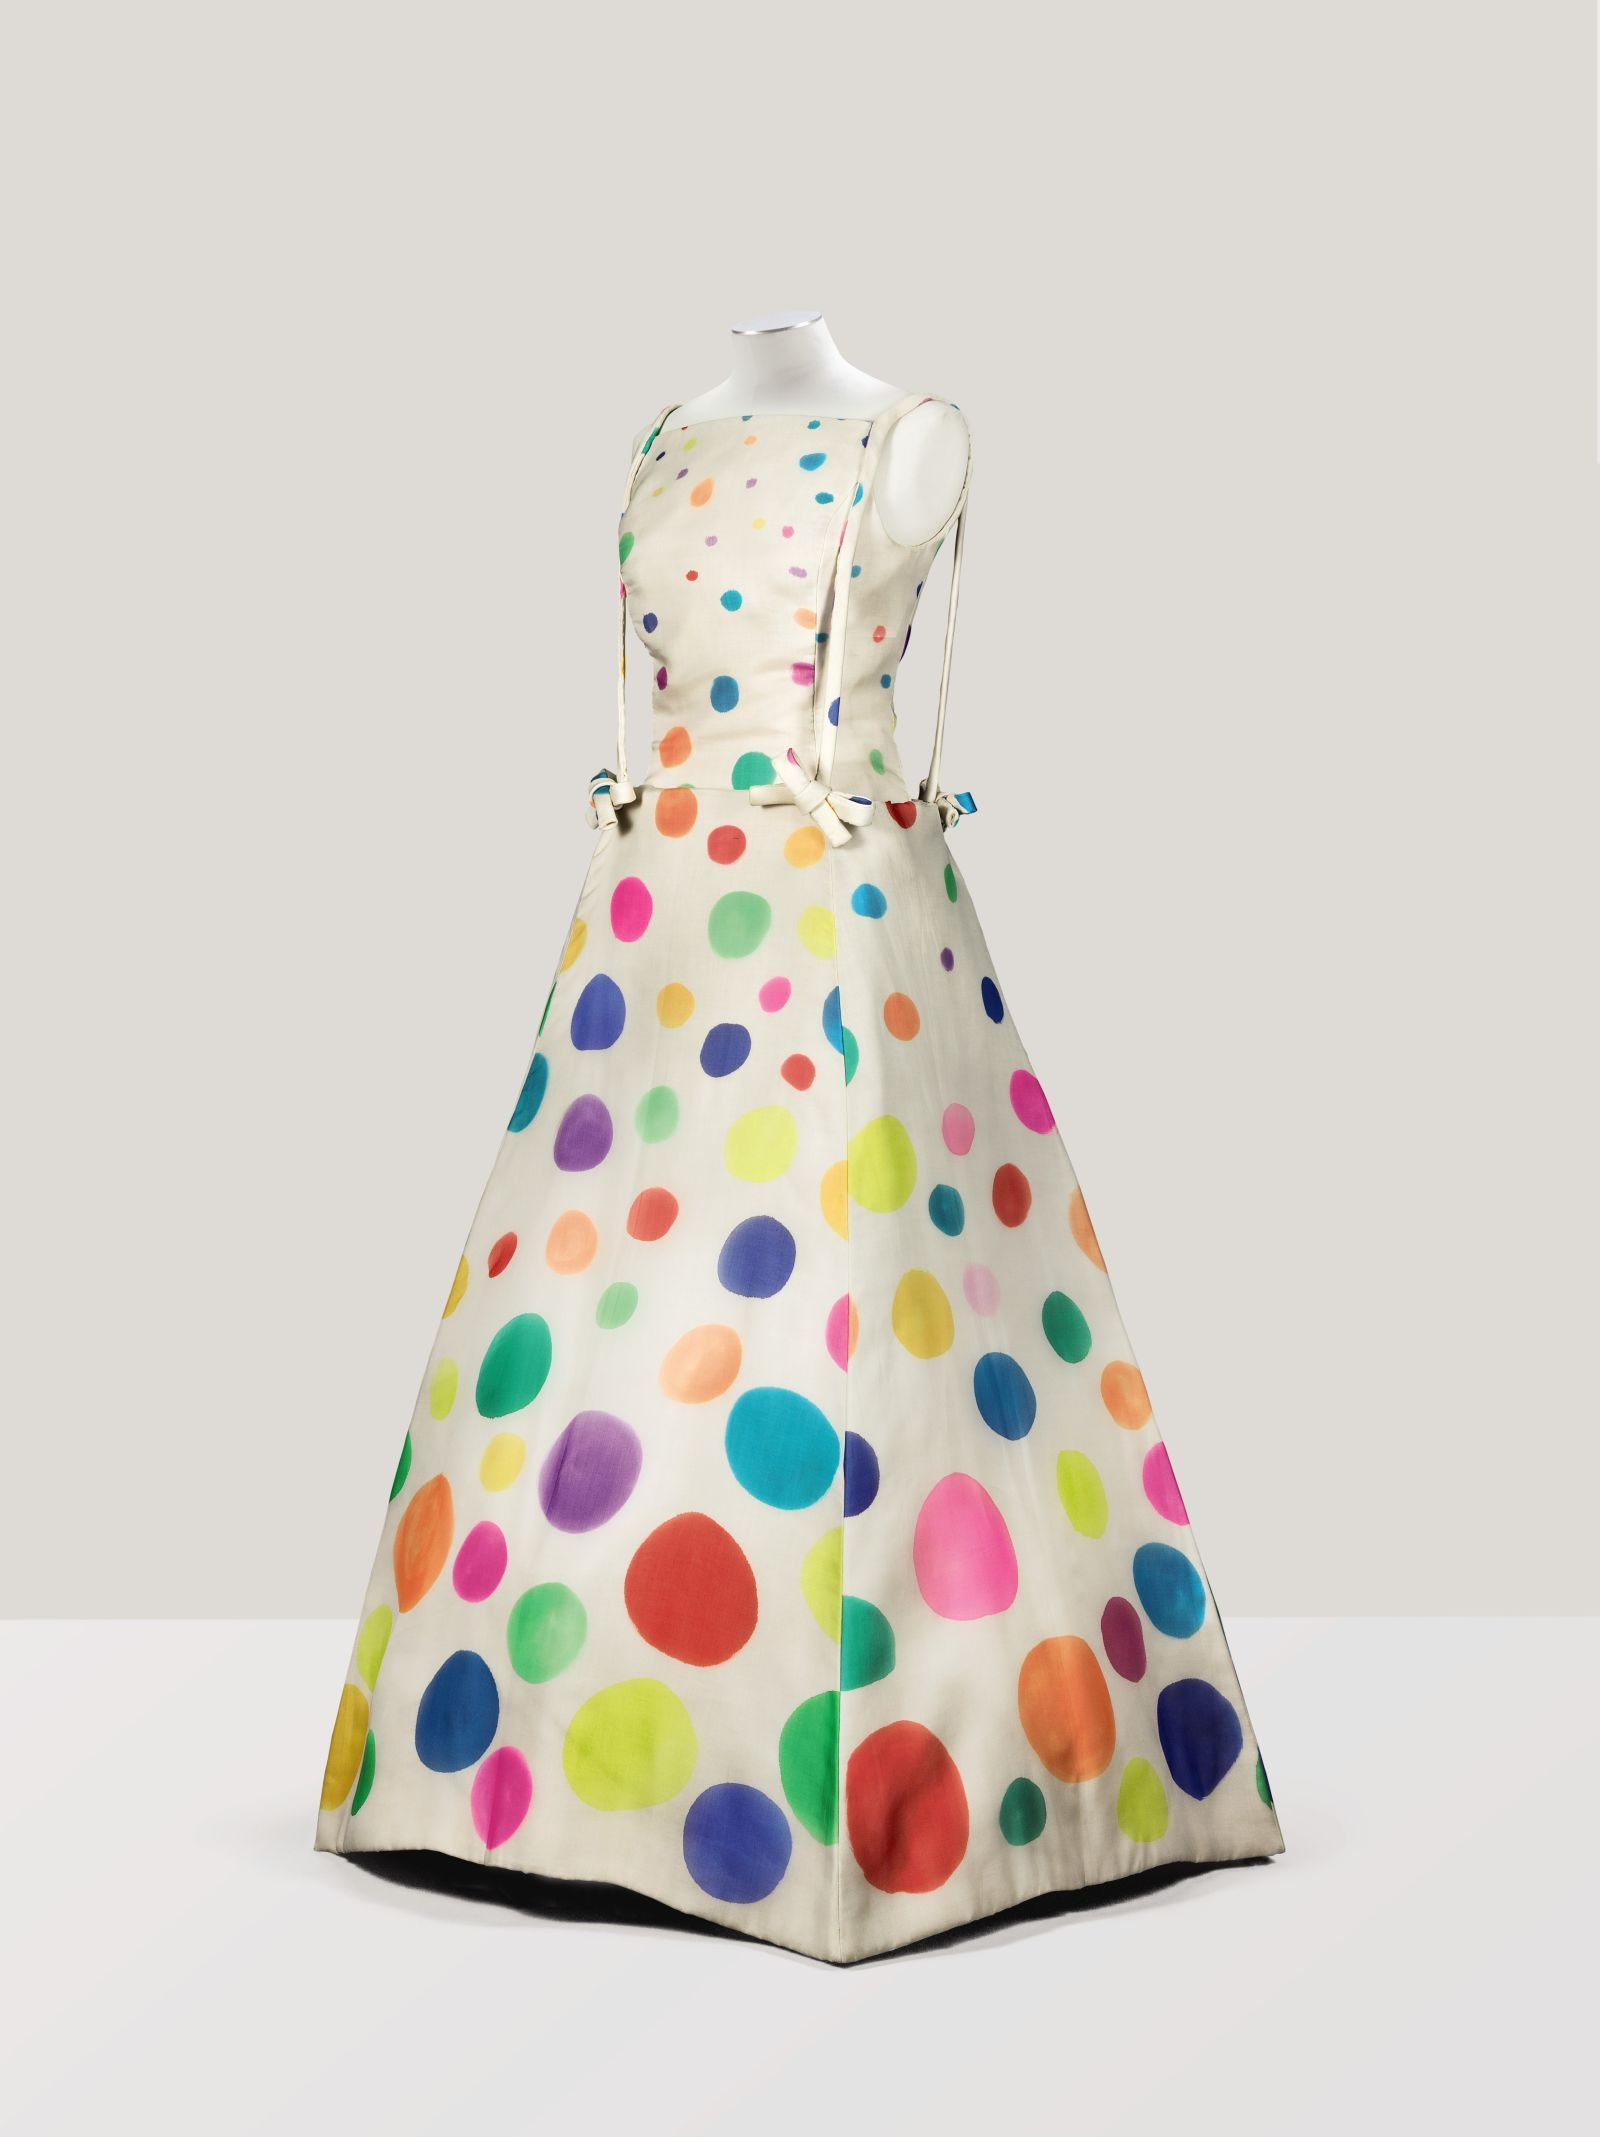 Marc Vaughan designed this square evening dress in 1973 for the couturier's muse. It's hand-painted with multicolored circles, and is set to sell for €800-€1,200 ($879 - $1319).